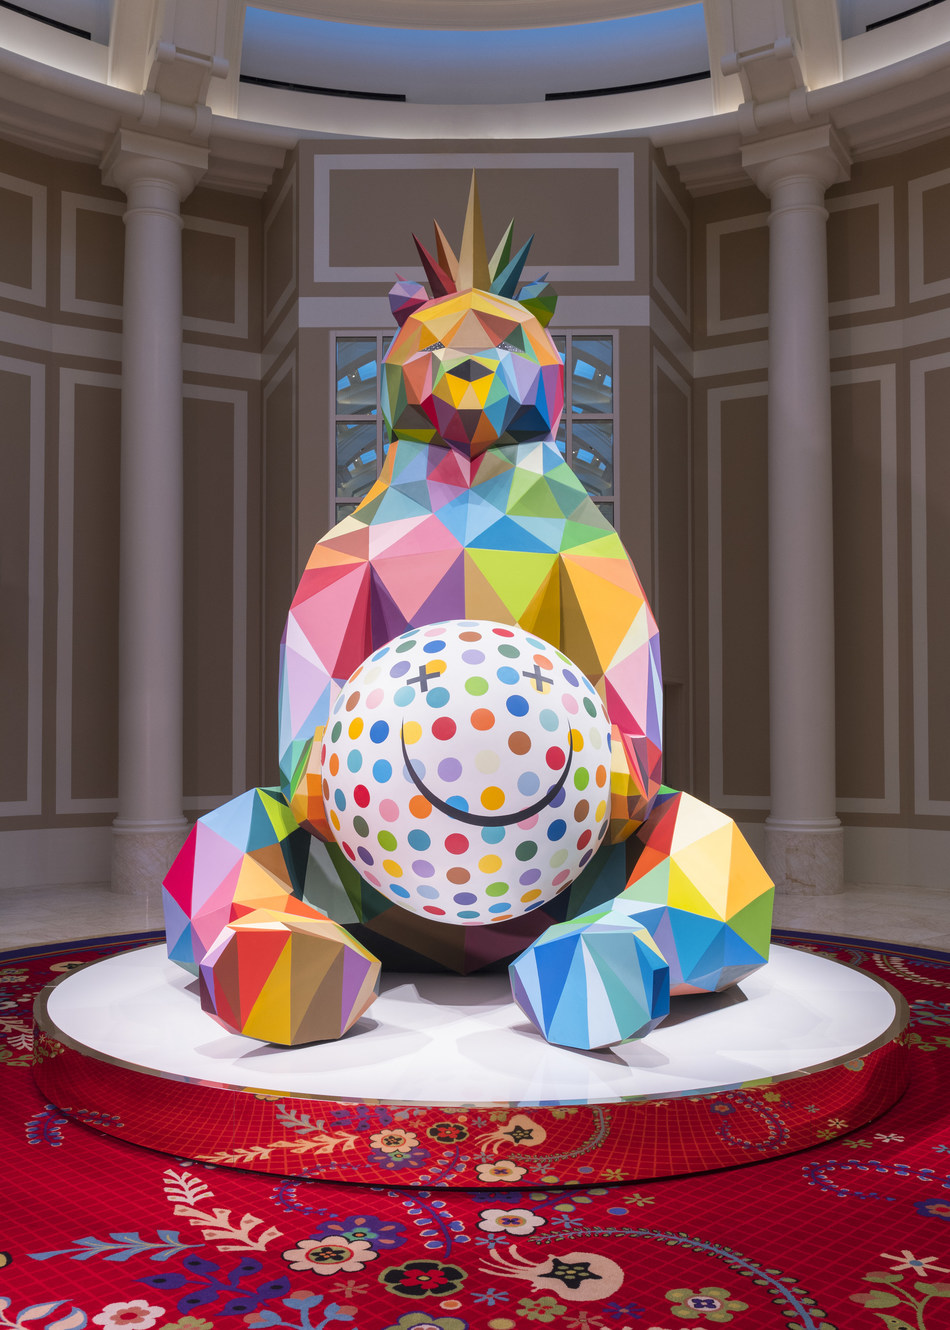 Wynn Resorts adds a new level of modern vigor to its world-class art collection with the acquisition of Smiling King Bear, a pop-surreal sculpture created by the famed Spanish contemporary artist Okuda San Miguel. Photo Credit: Jeff Green.